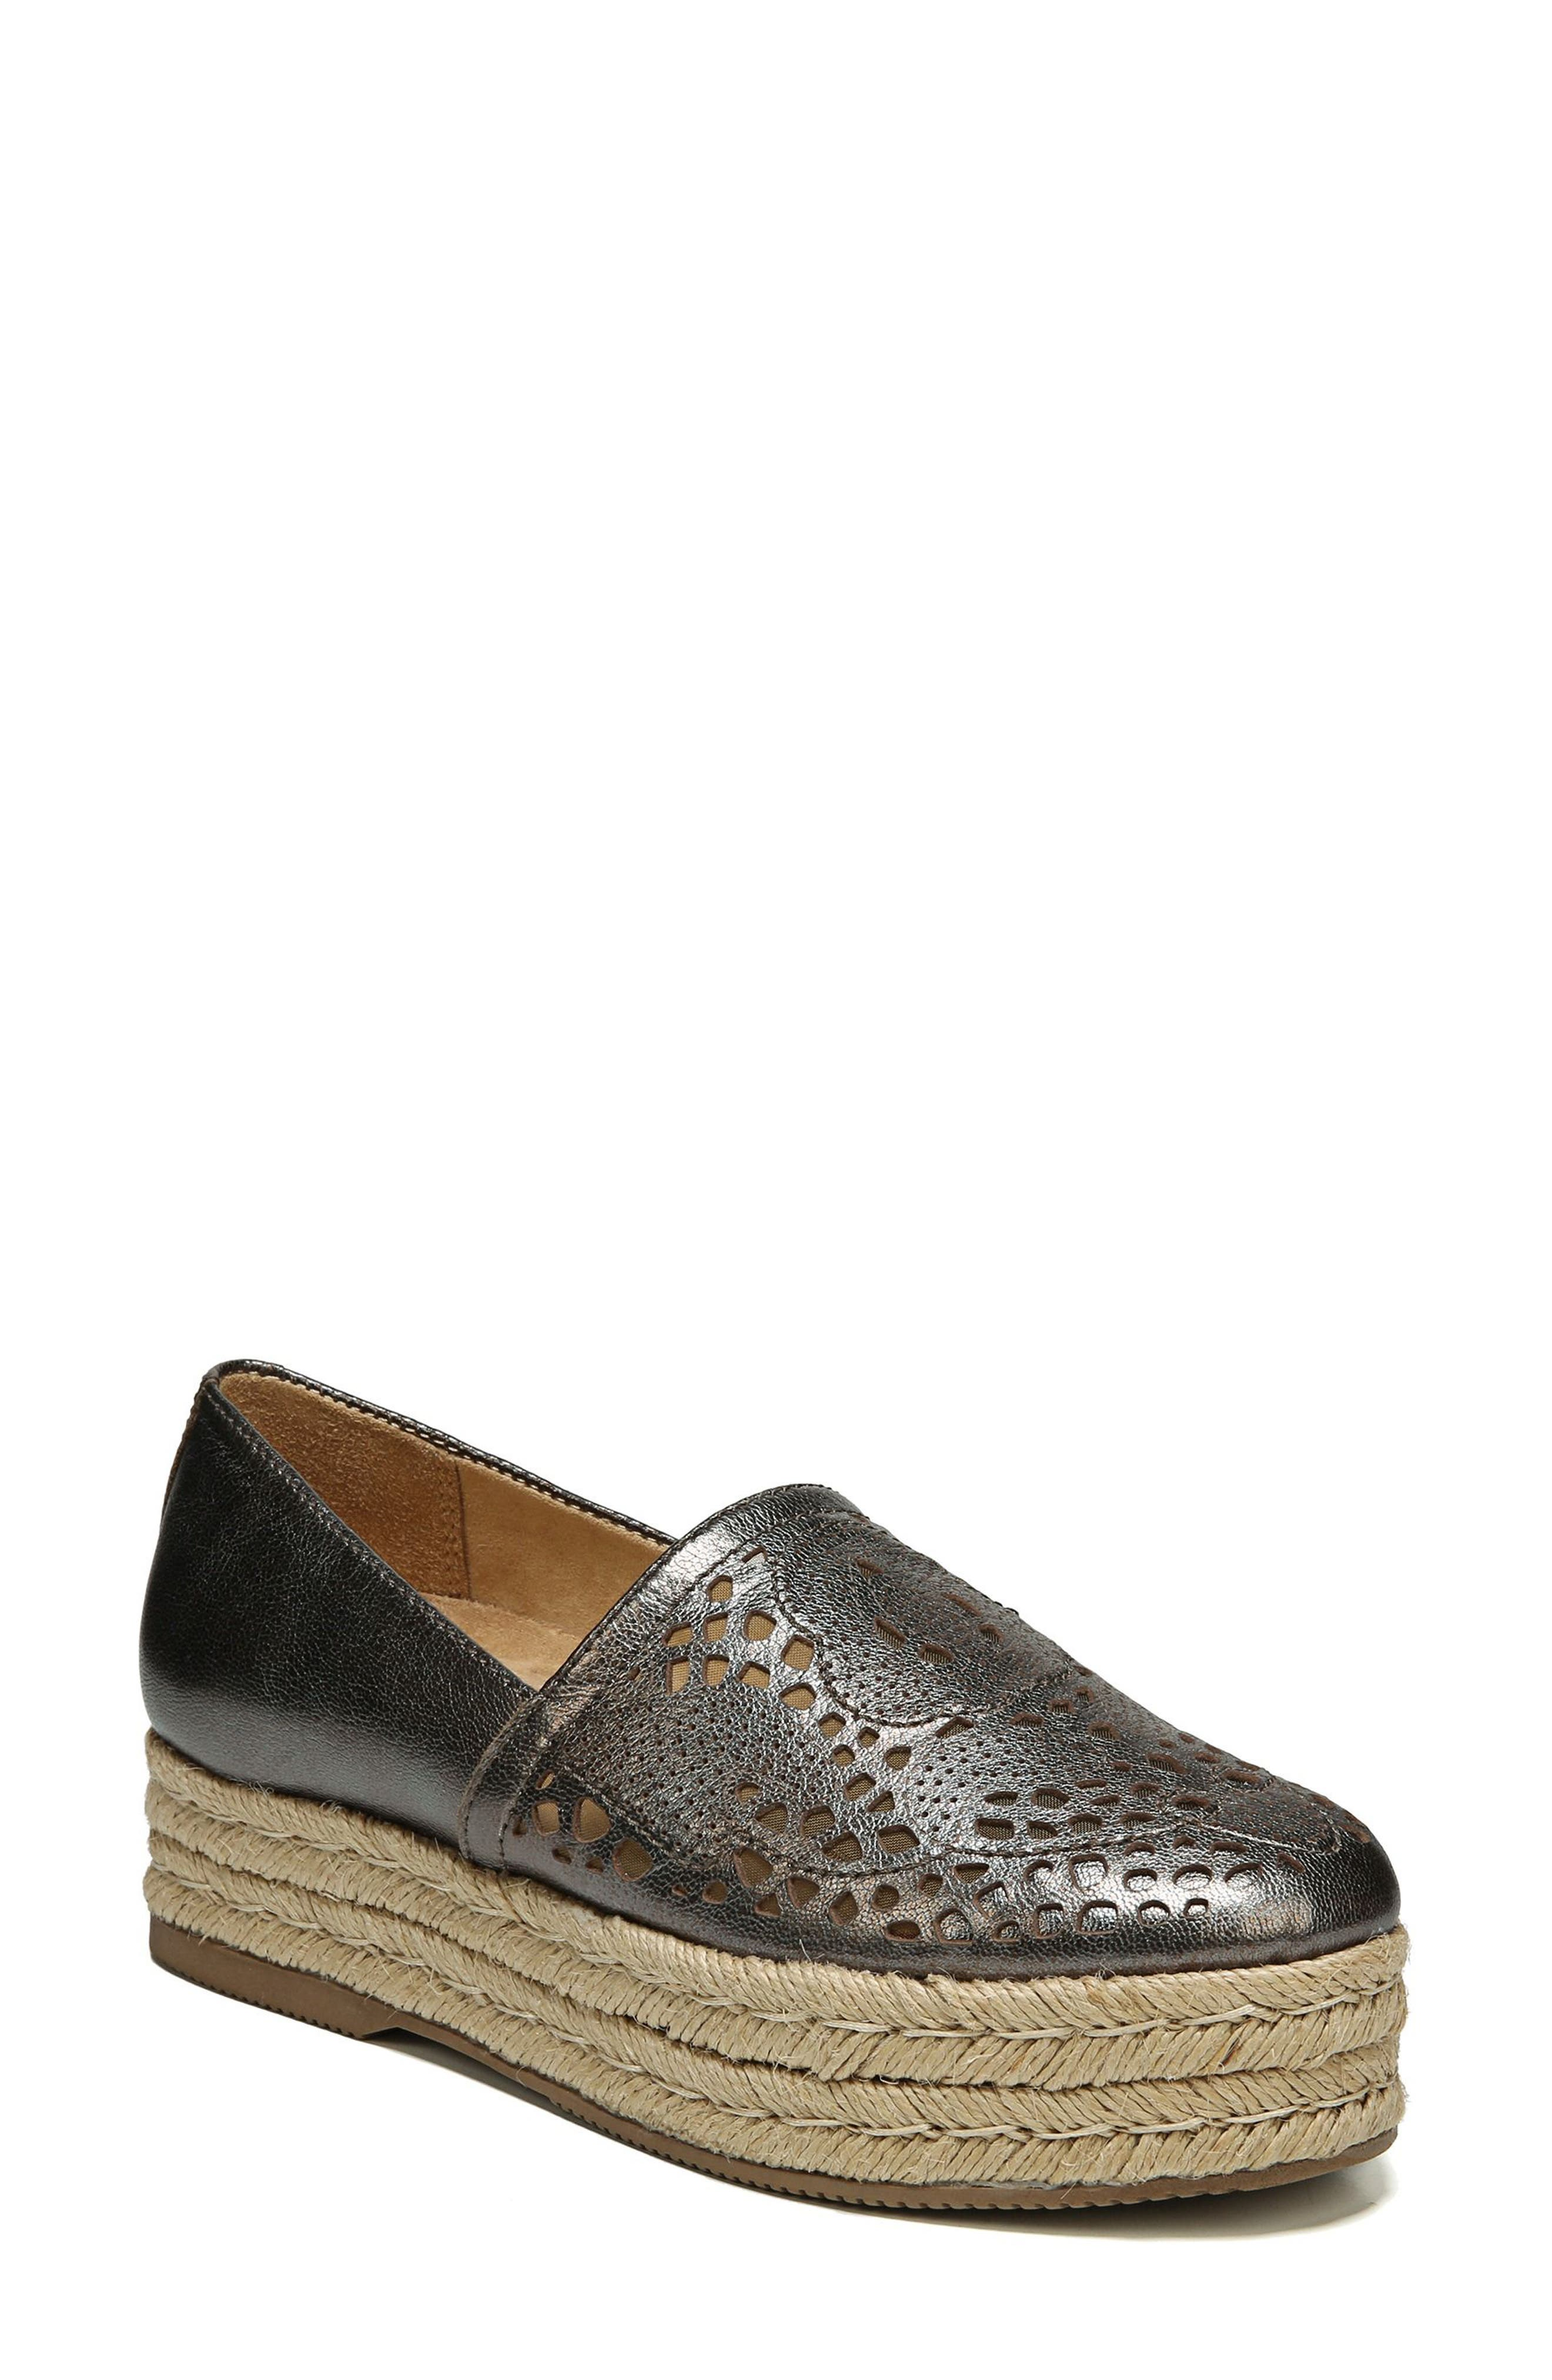 Main Image - Naturalizer Thea Perforated Platform Espadrille (Women)